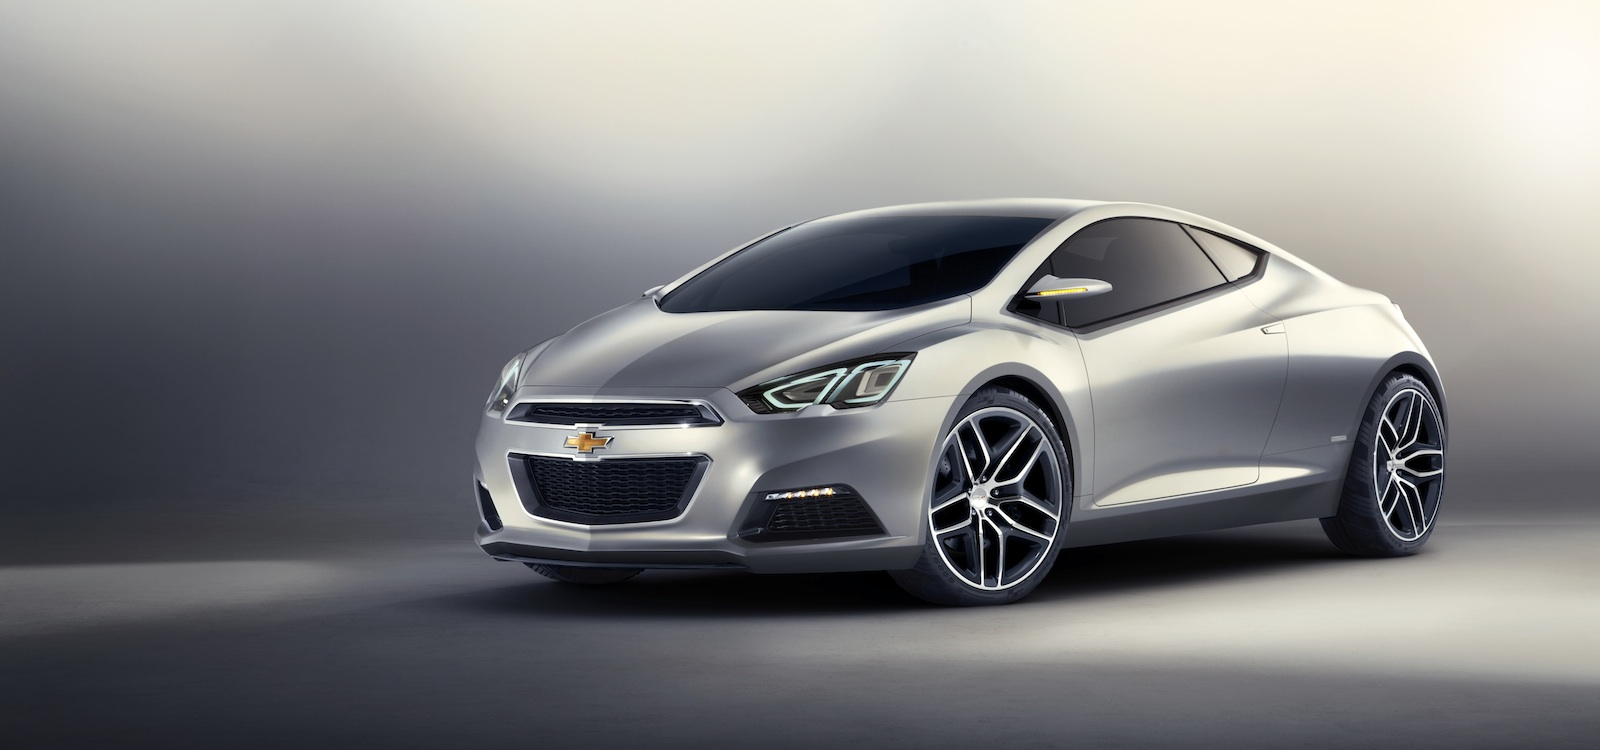 All Chevy chevy cars 2012 : 2012 Chevrolet Tru 140S Concept Review - Top Speed